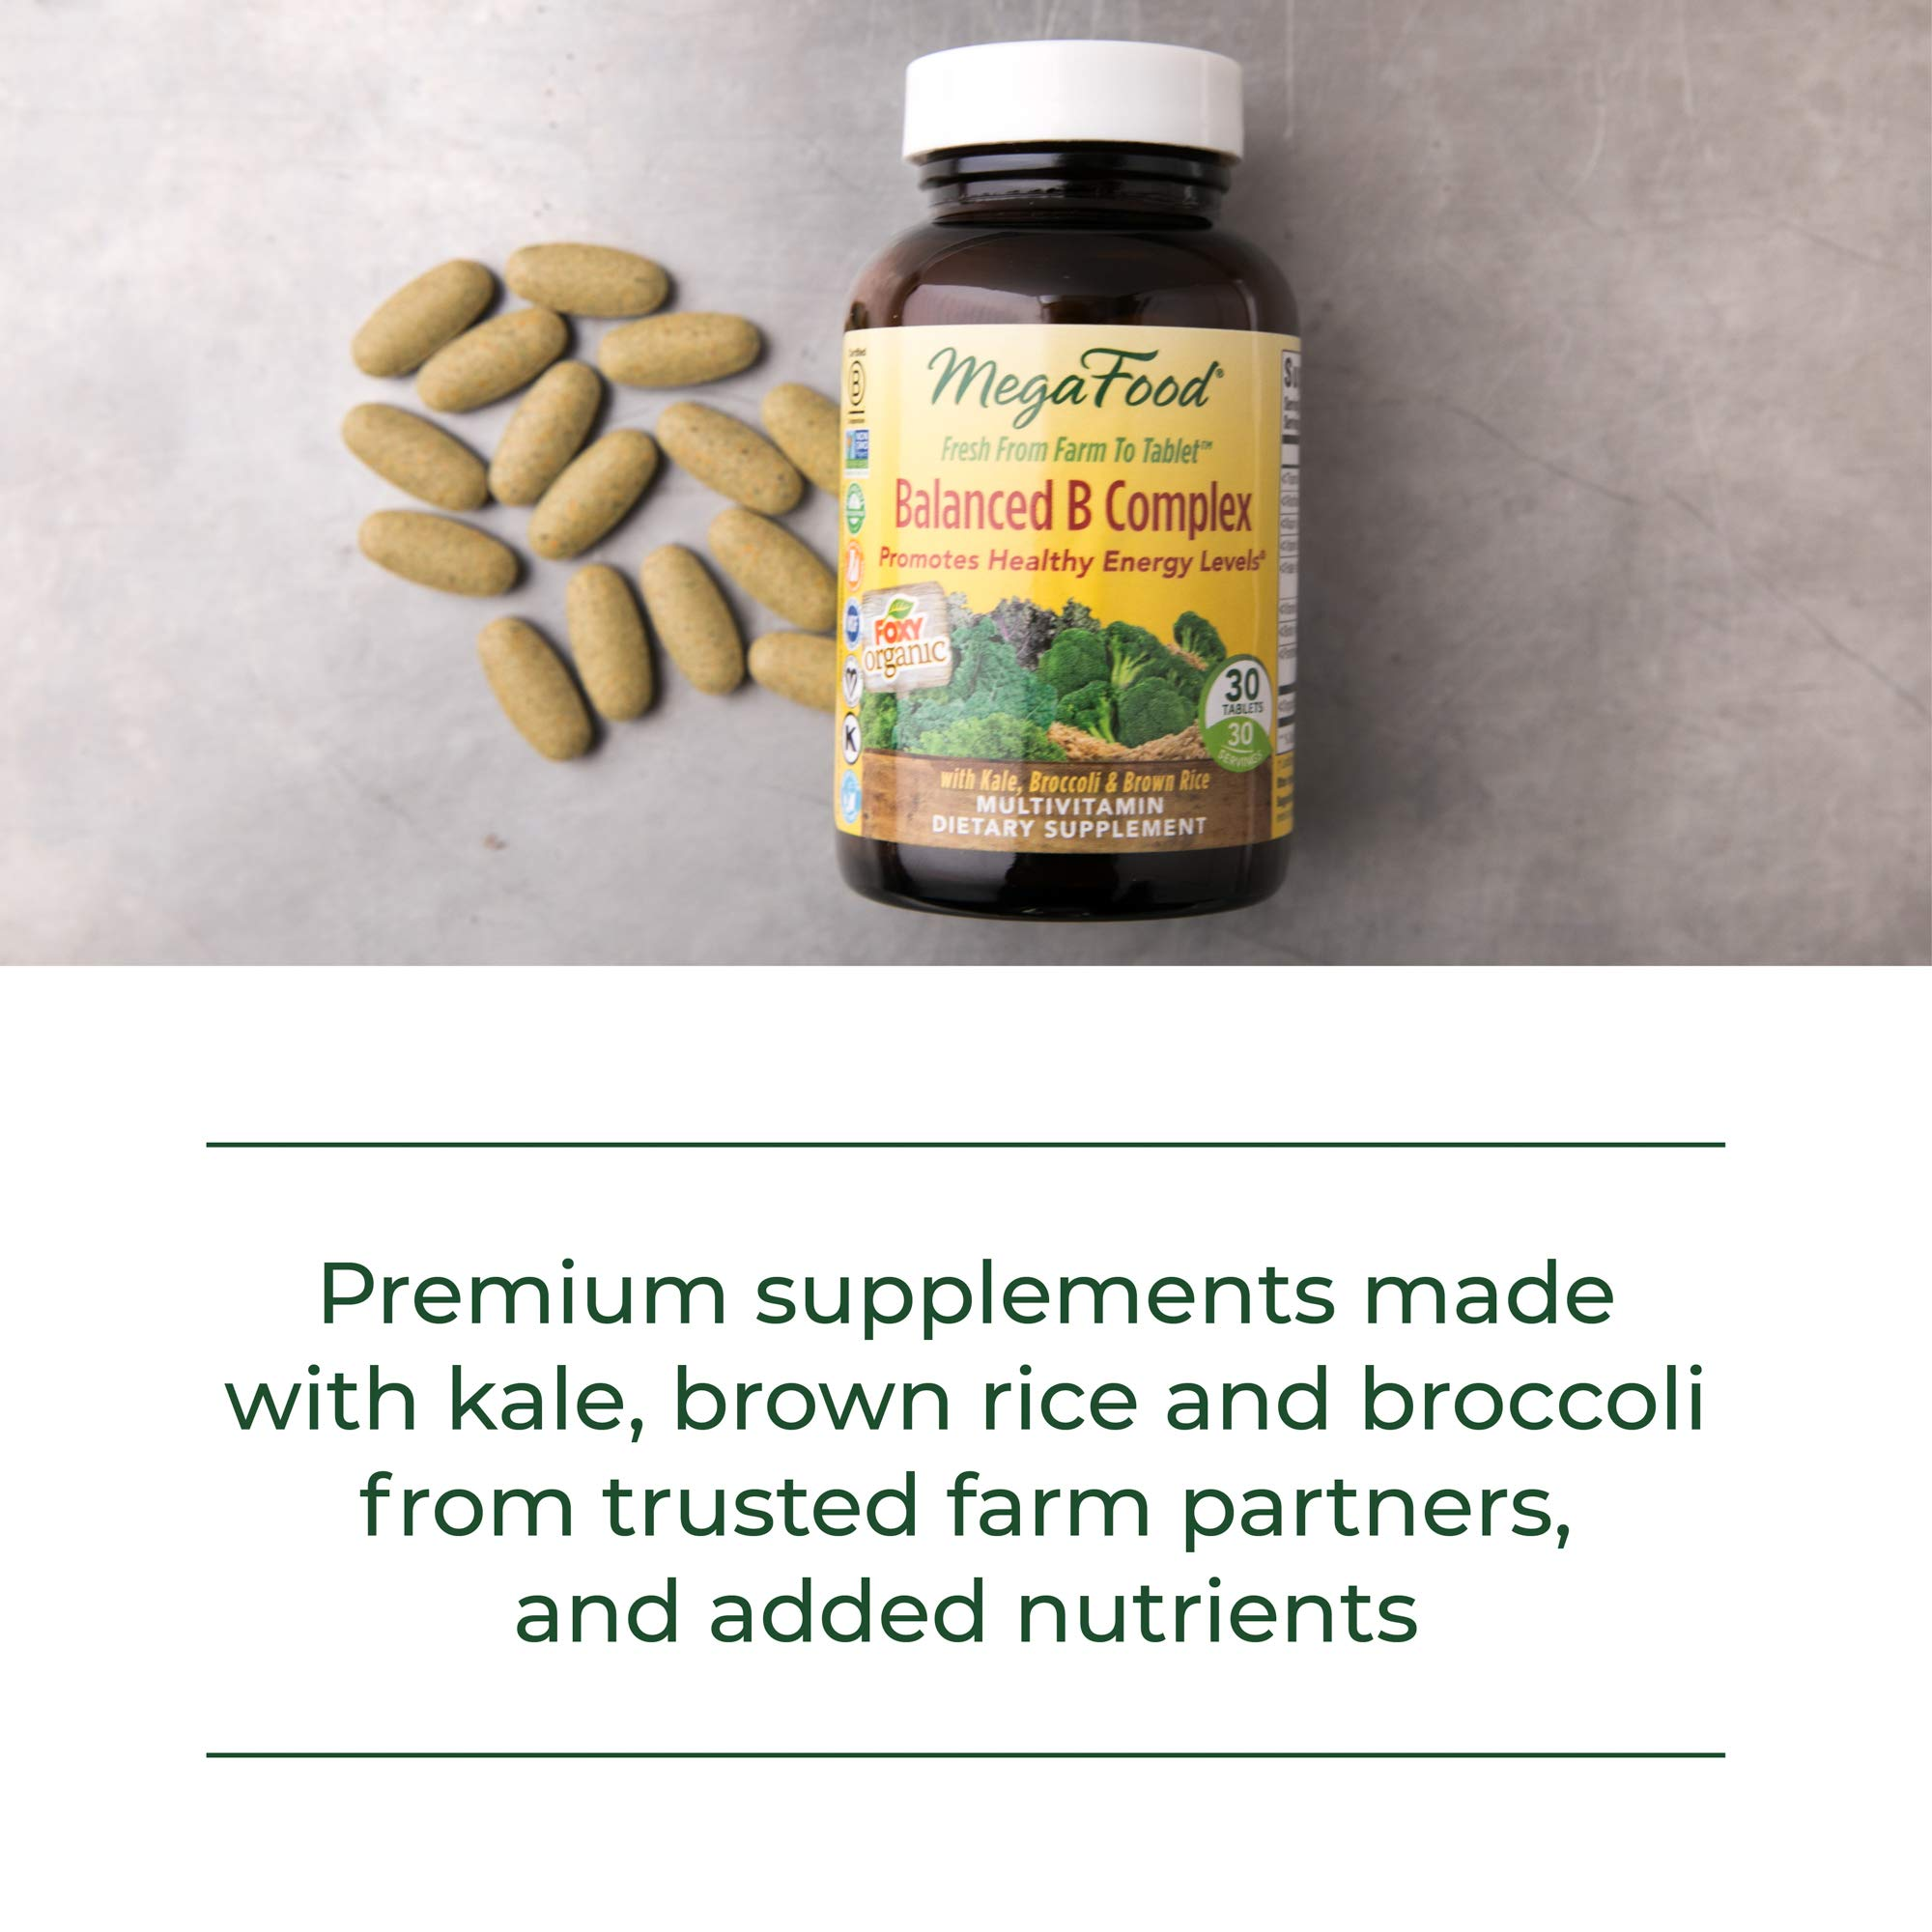 MegaFood, Balanced B Complex, Promotes Healthy Energy Levels, Multivitamin Dietary Supplement, Gluten Free, Vegan, 90 Tablets (90 Servings) (FFP) by MegaFood (Image #8)